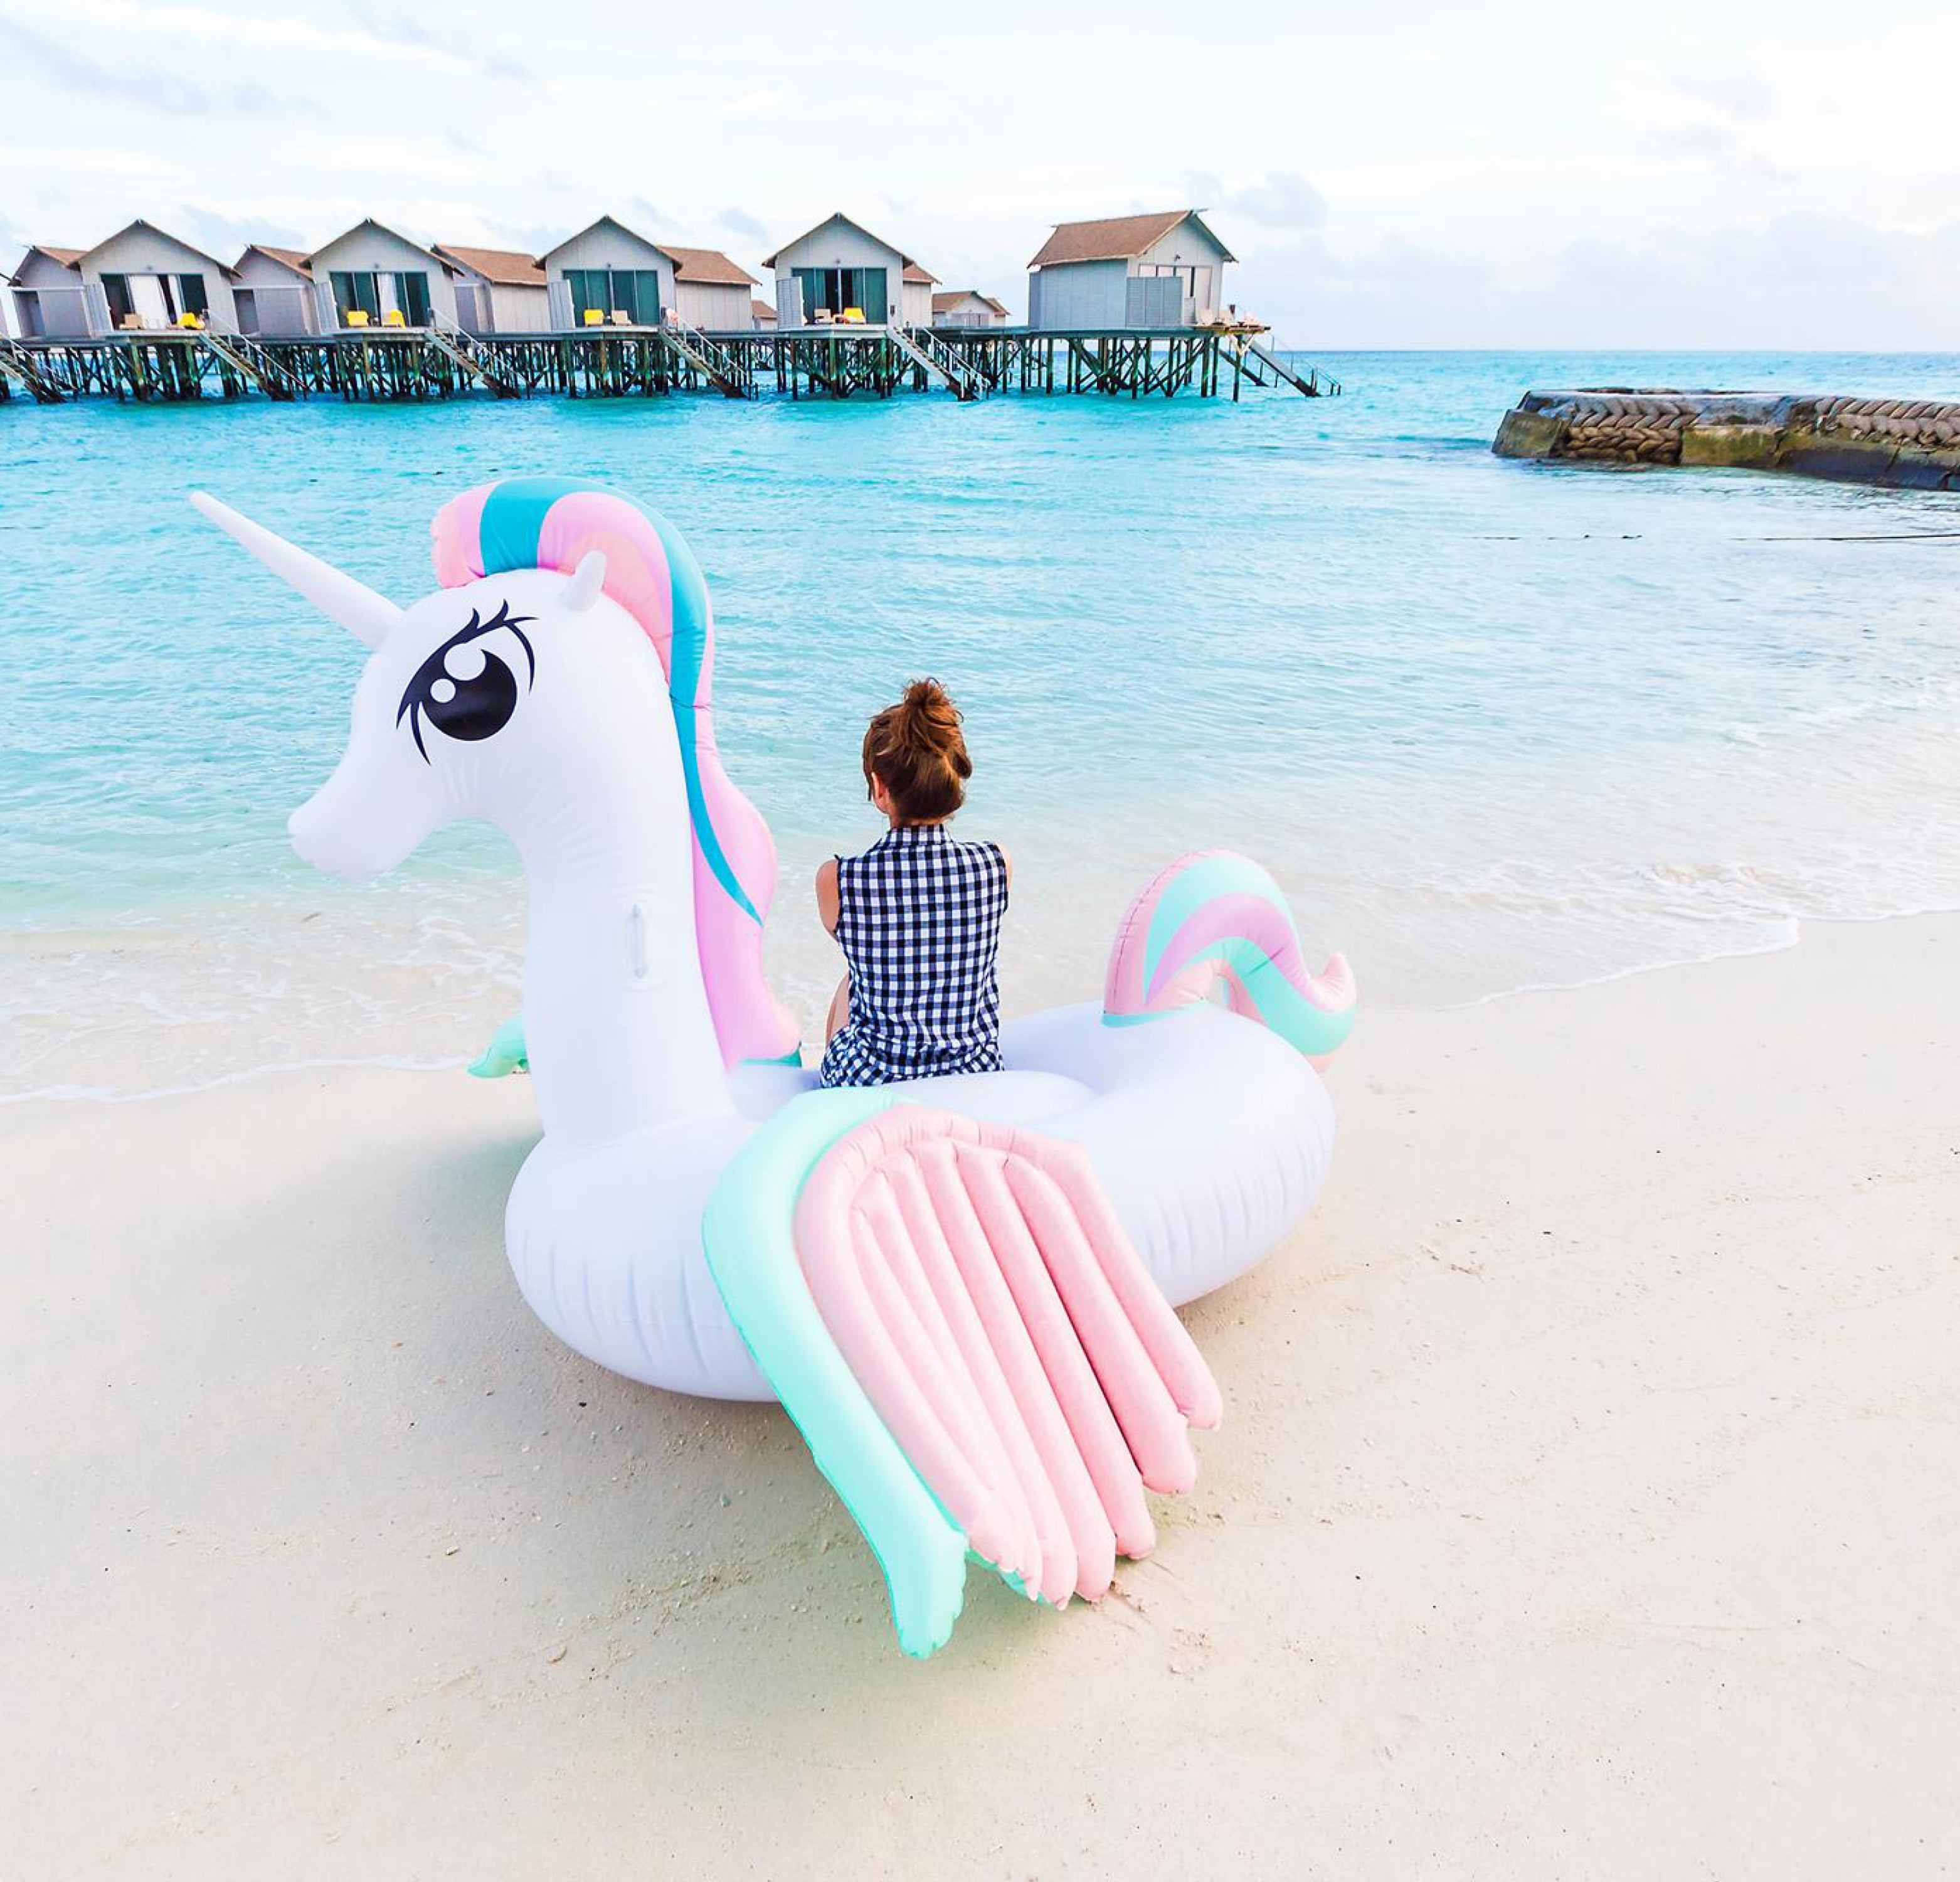 The unicorn: the trendy good luck charm for a fun and colourful summer